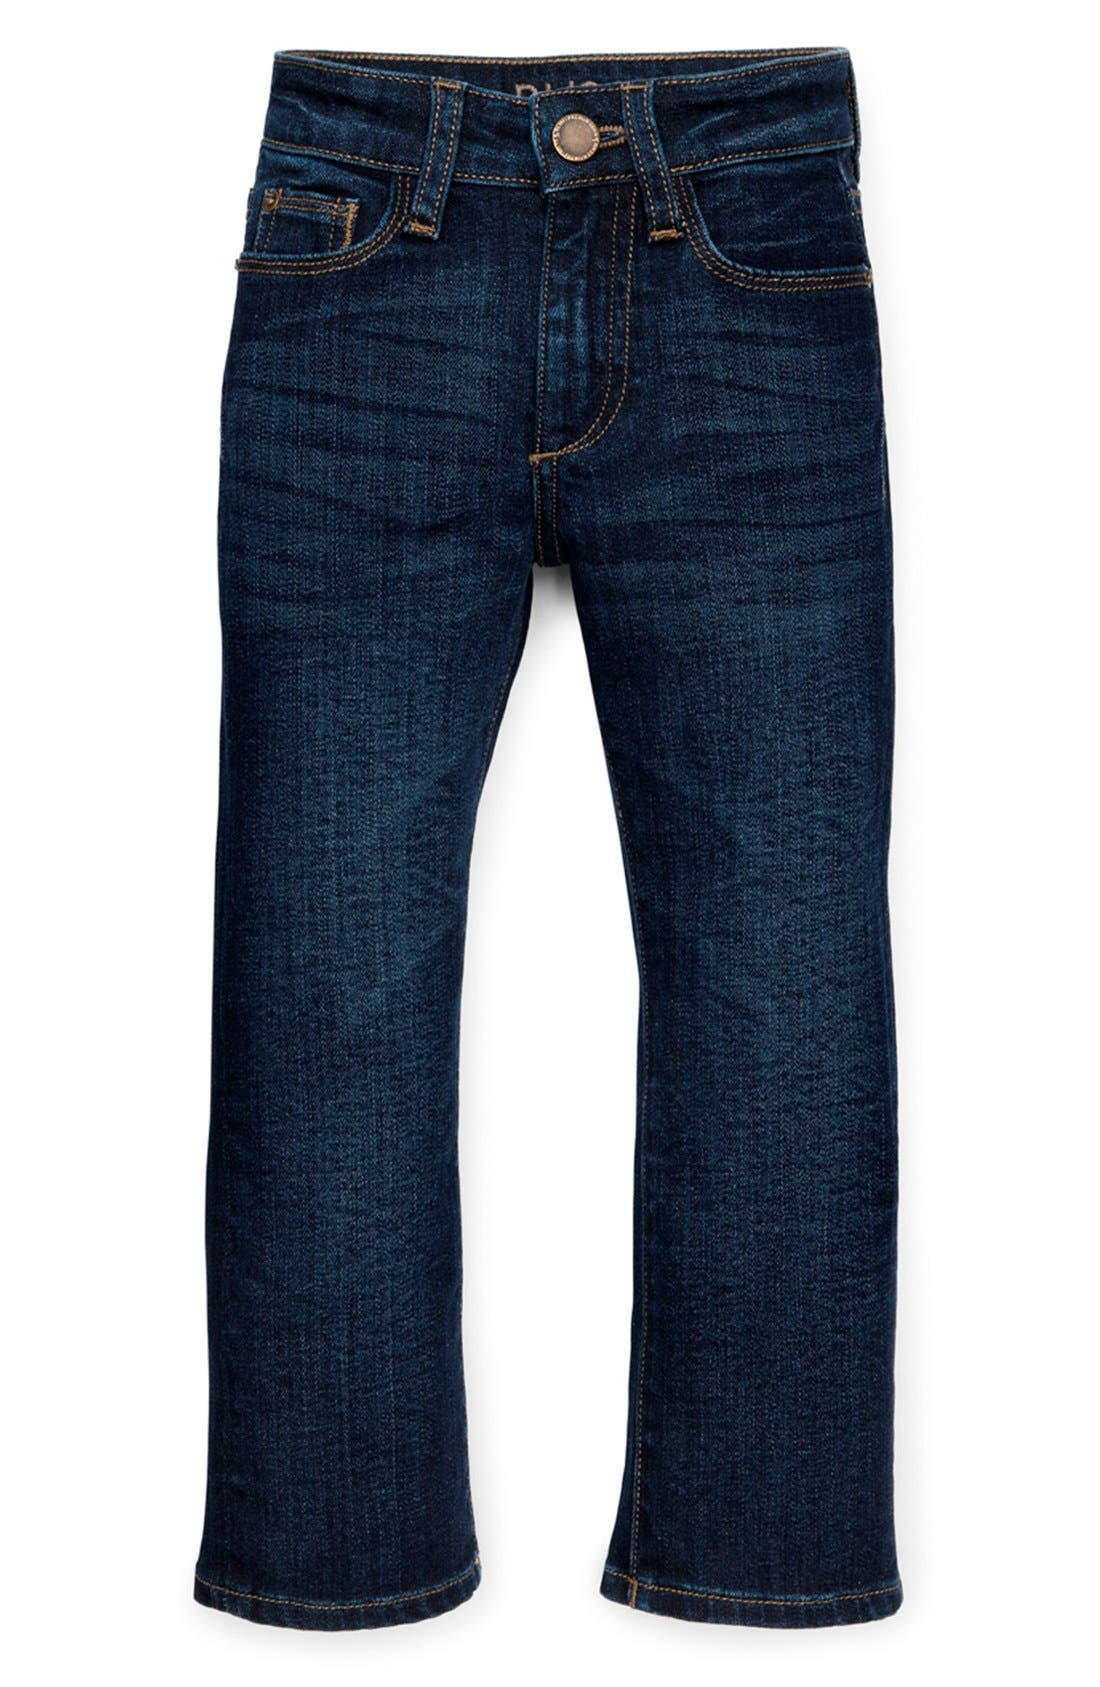 'Brady' Slim Fit Jeans,                         Main,                         color, Ferret